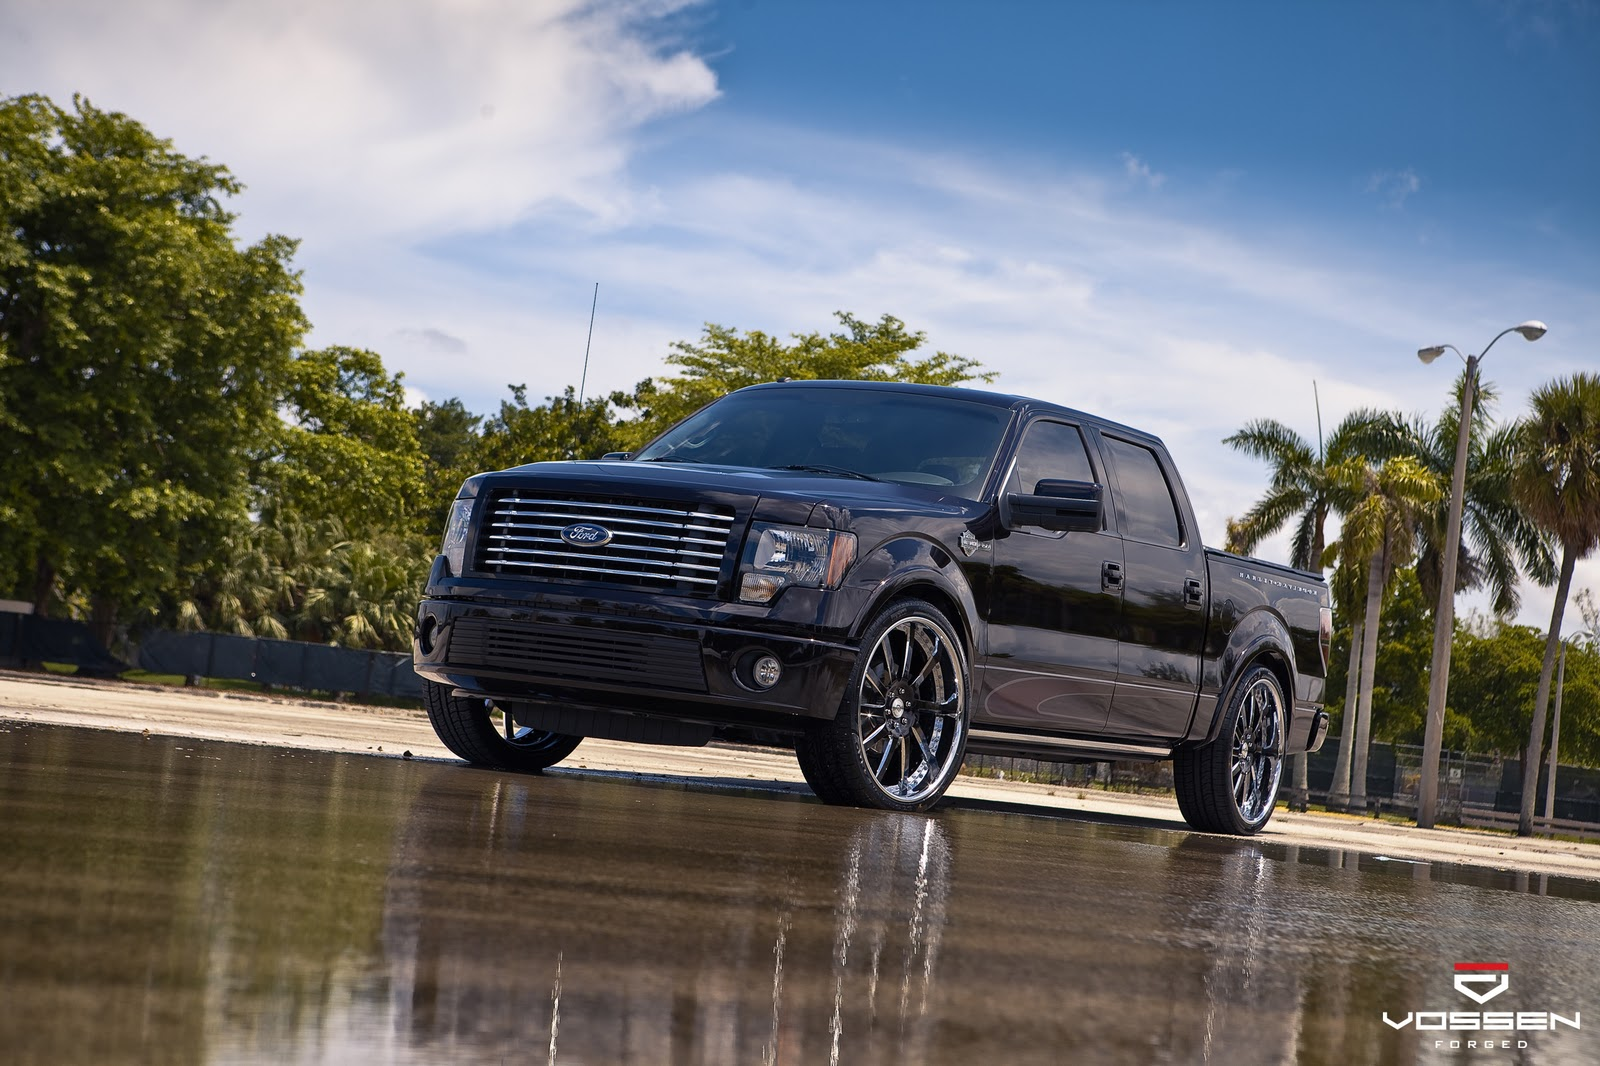 Ford F 150 wallpaper hd The Wallpaper Database 1600x1066